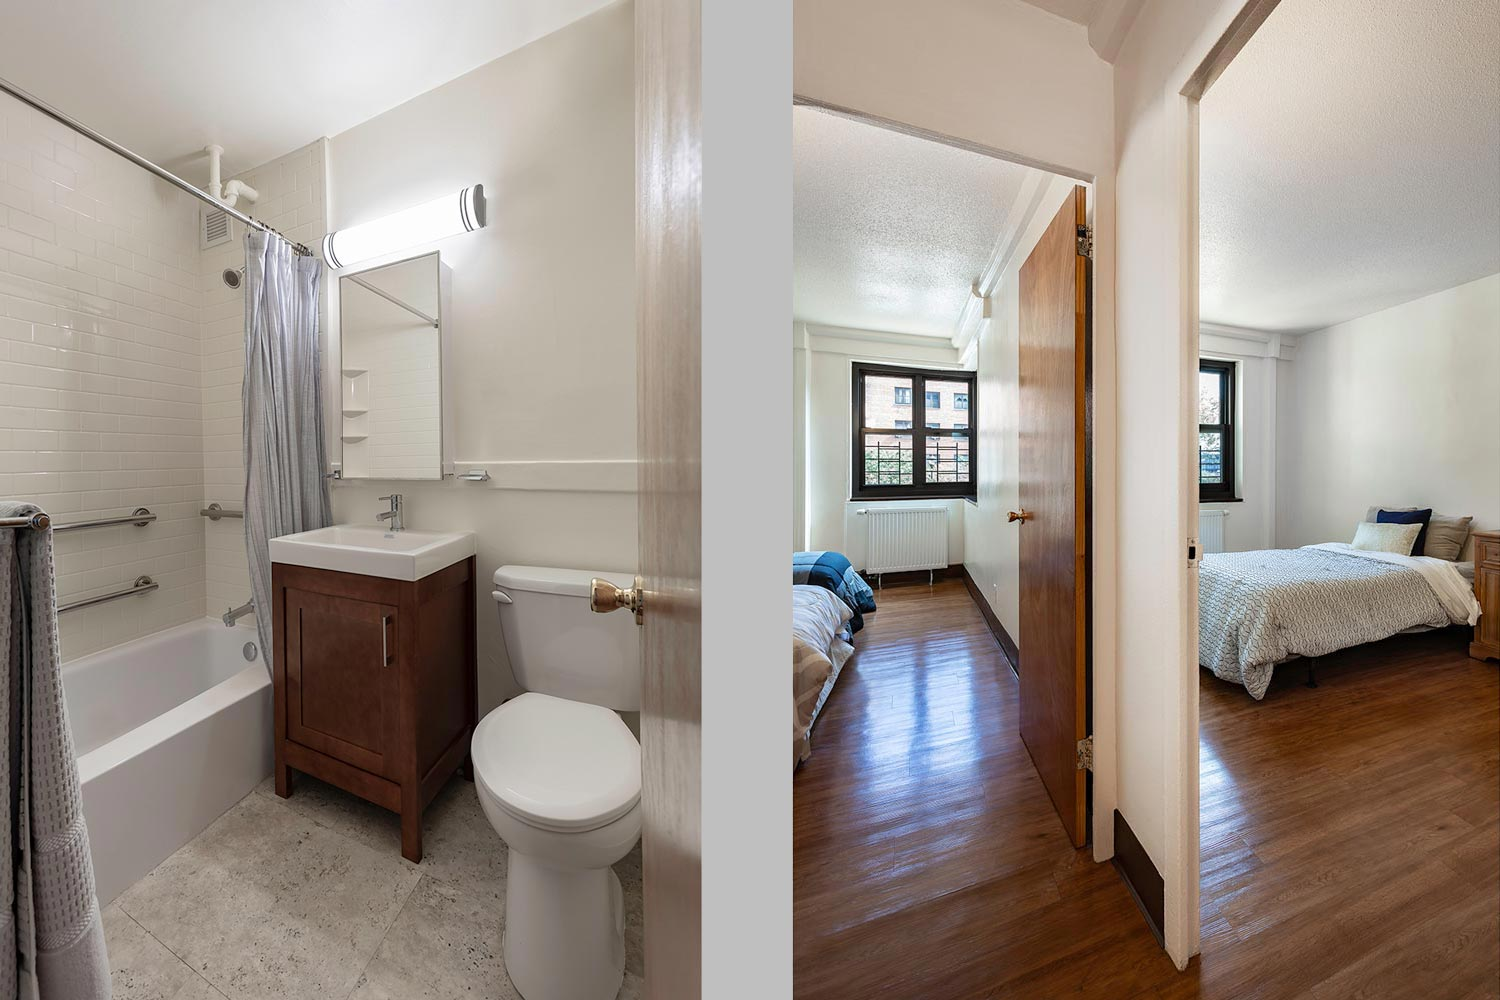 New kitchens, bathrooms, and finishes were introduced into apartments.